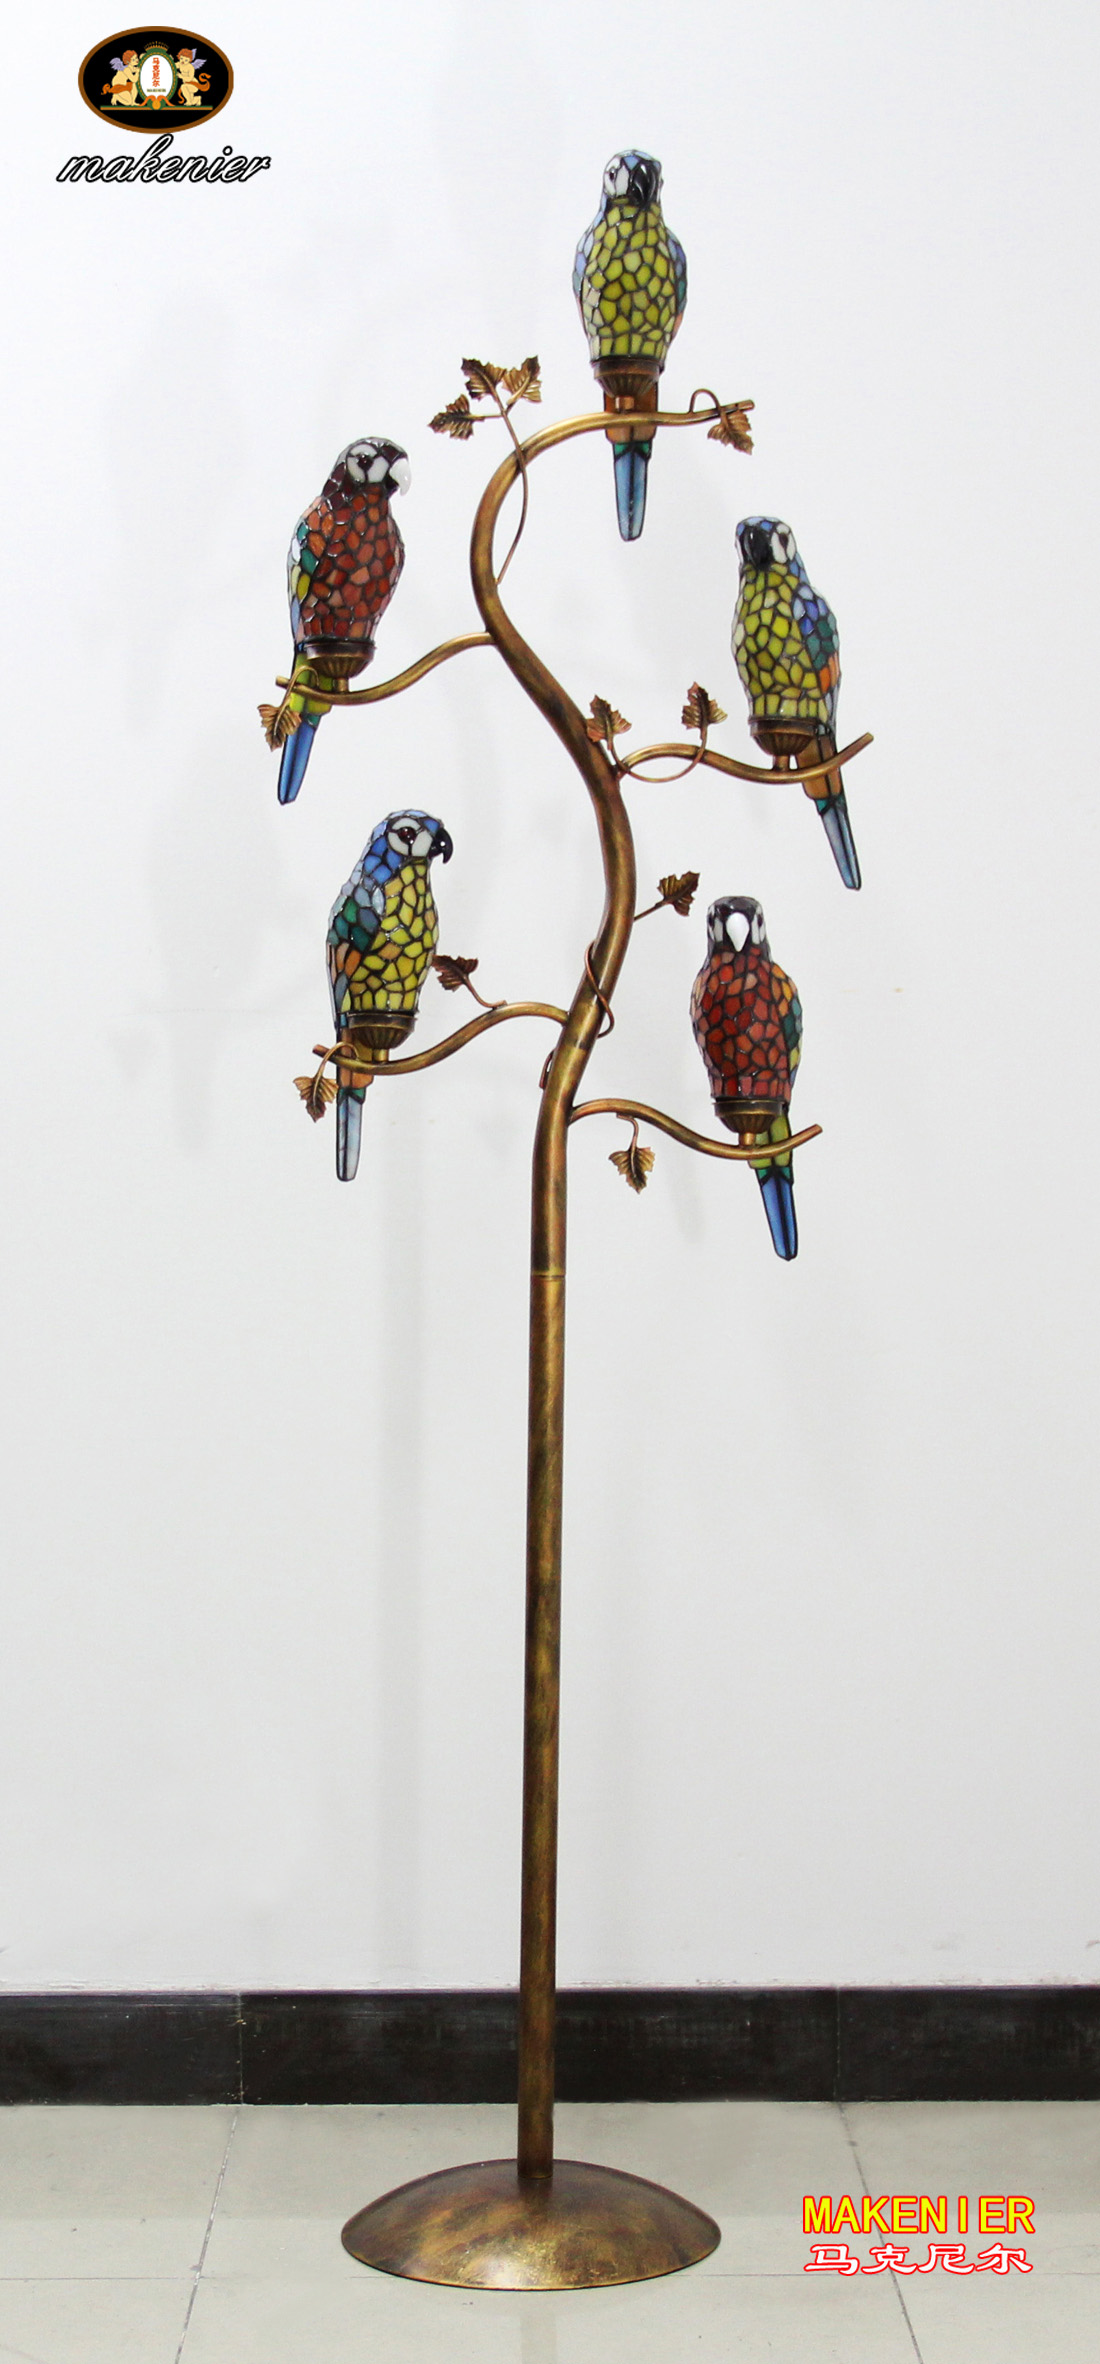 Makenier-Vintage-Tiffany-Style-Stained-Glass-5-light-Parrot-Floor-Lamp